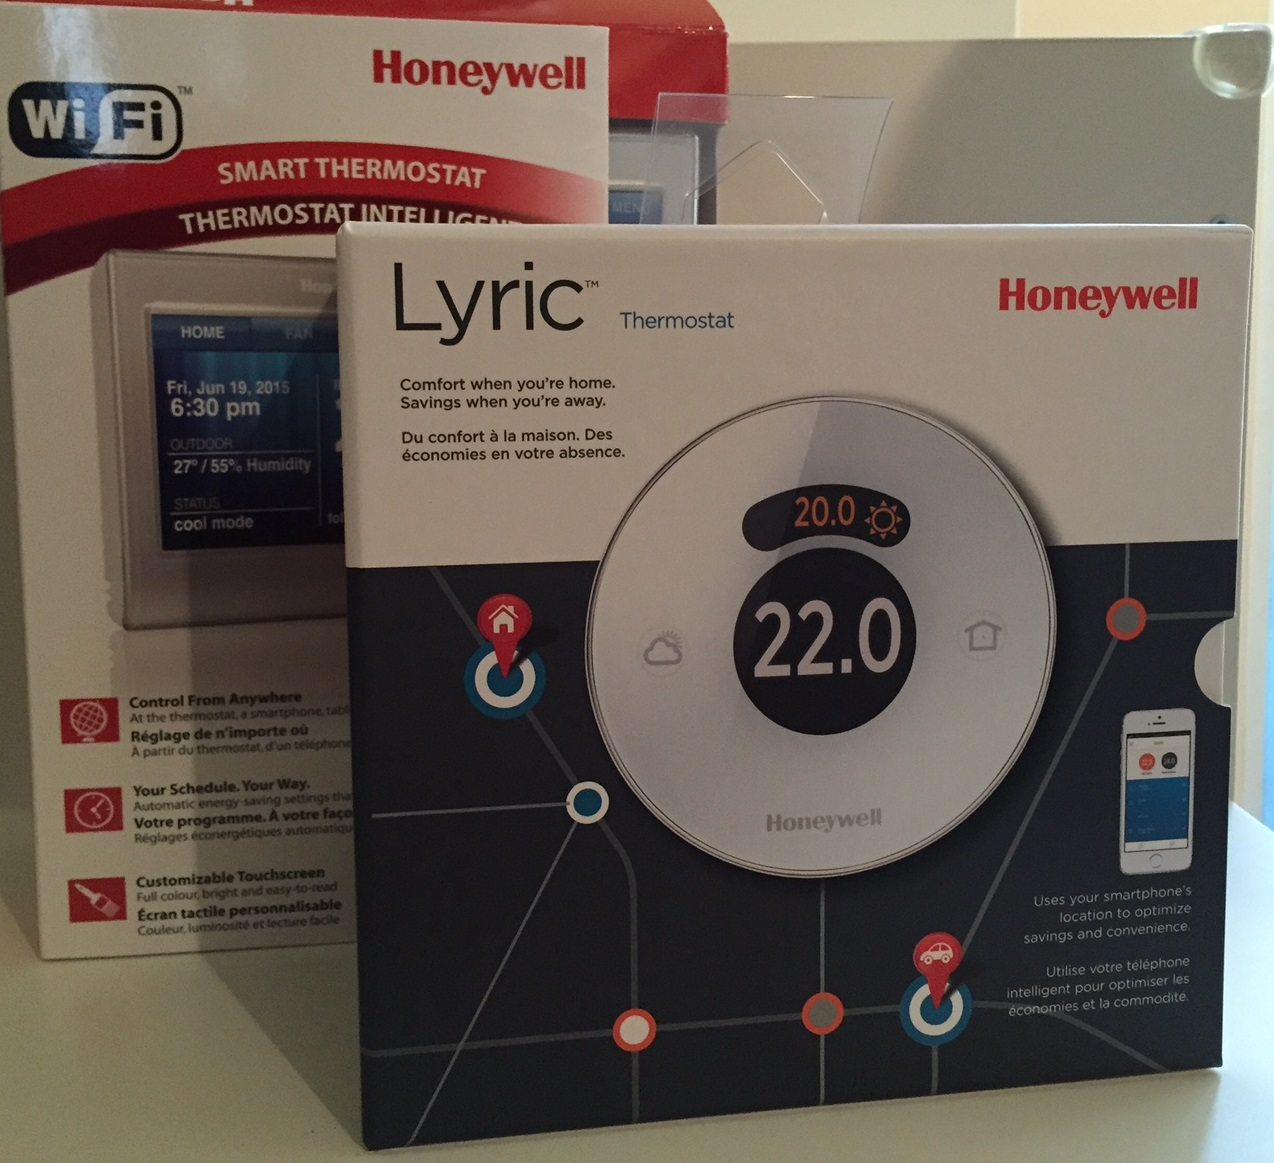 Honeywell Brings Its Thermometers To The Smart Home Market